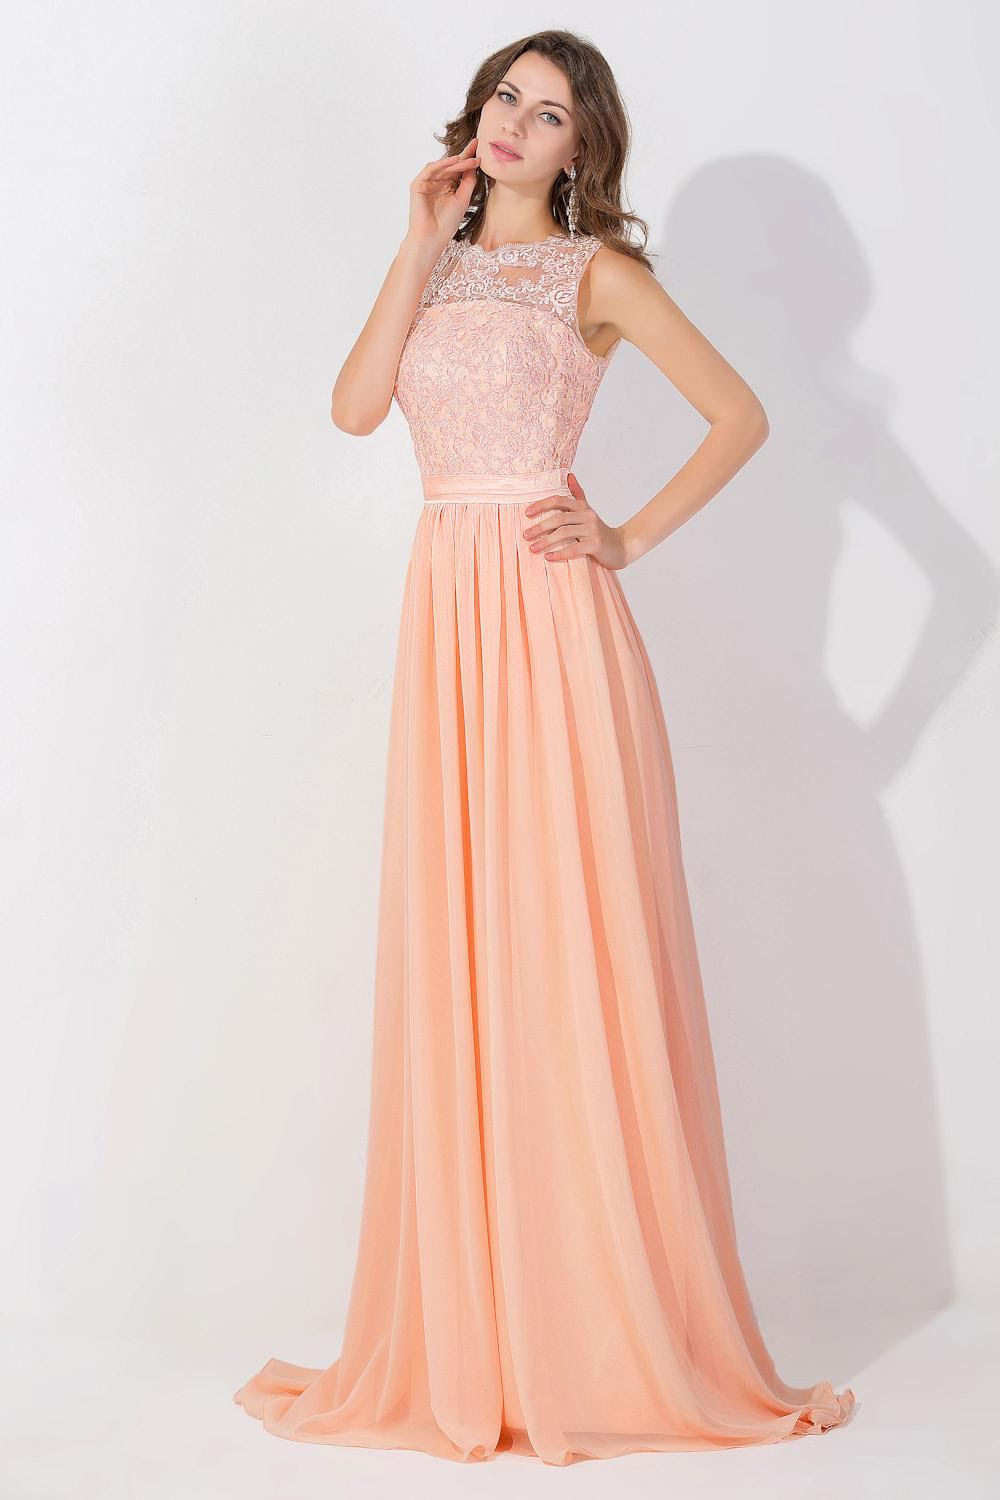 Long evening gown cheap